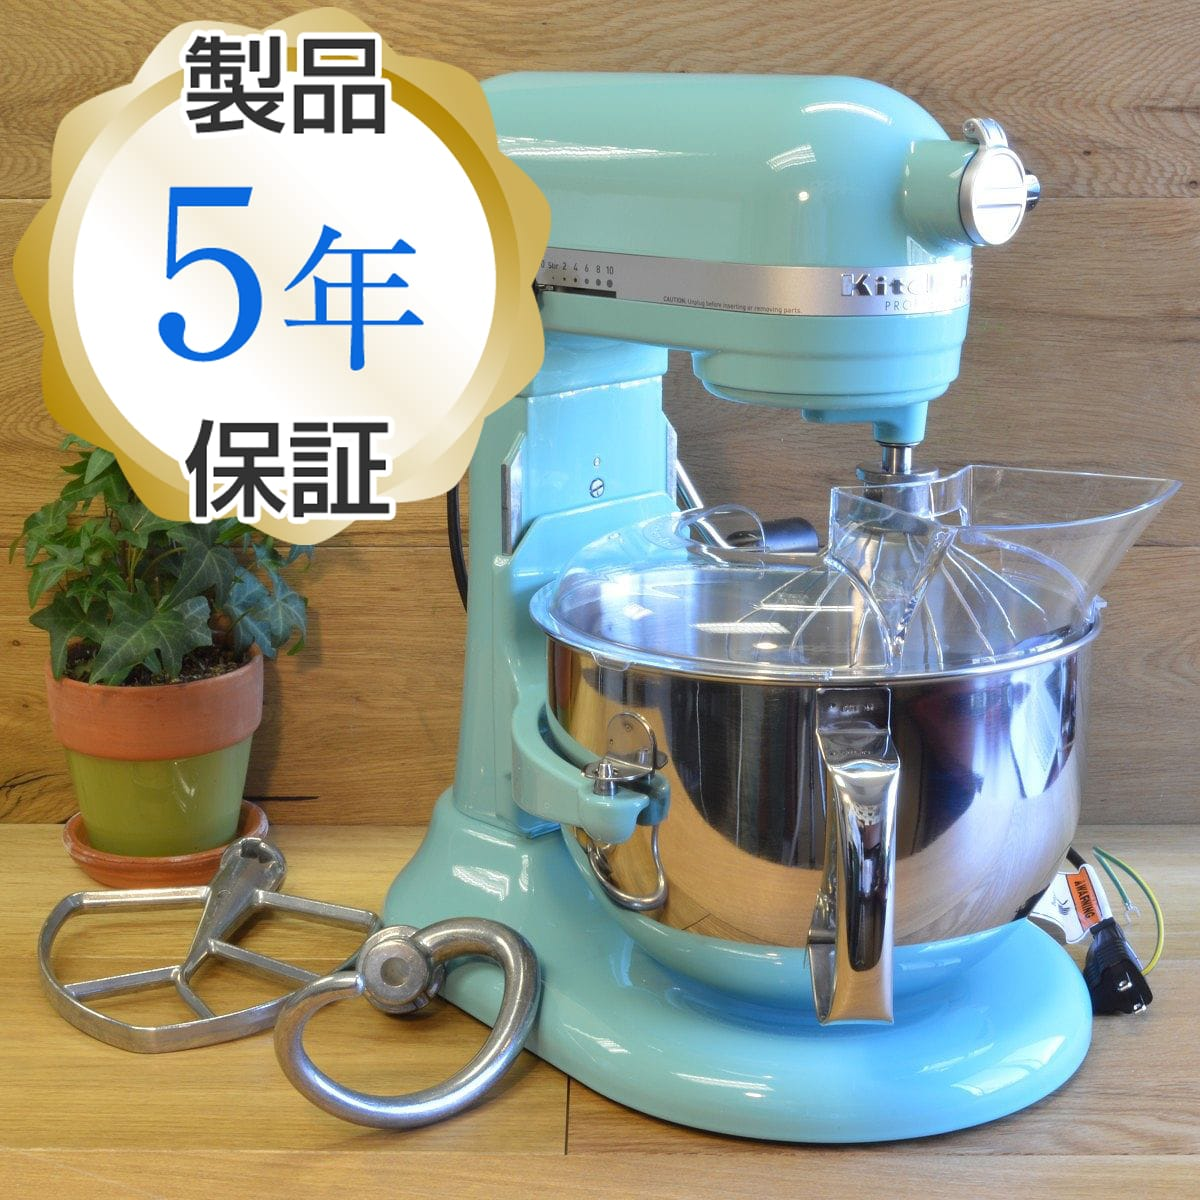 Gentil KitchenAid Stand Mixer Professional 600 Series 6 Quart アクアスカイ Tiffany Blue  KitchenAid 6 Qt Stand Mixer KP26M1xaq Aqua Sky Tiffany Blue